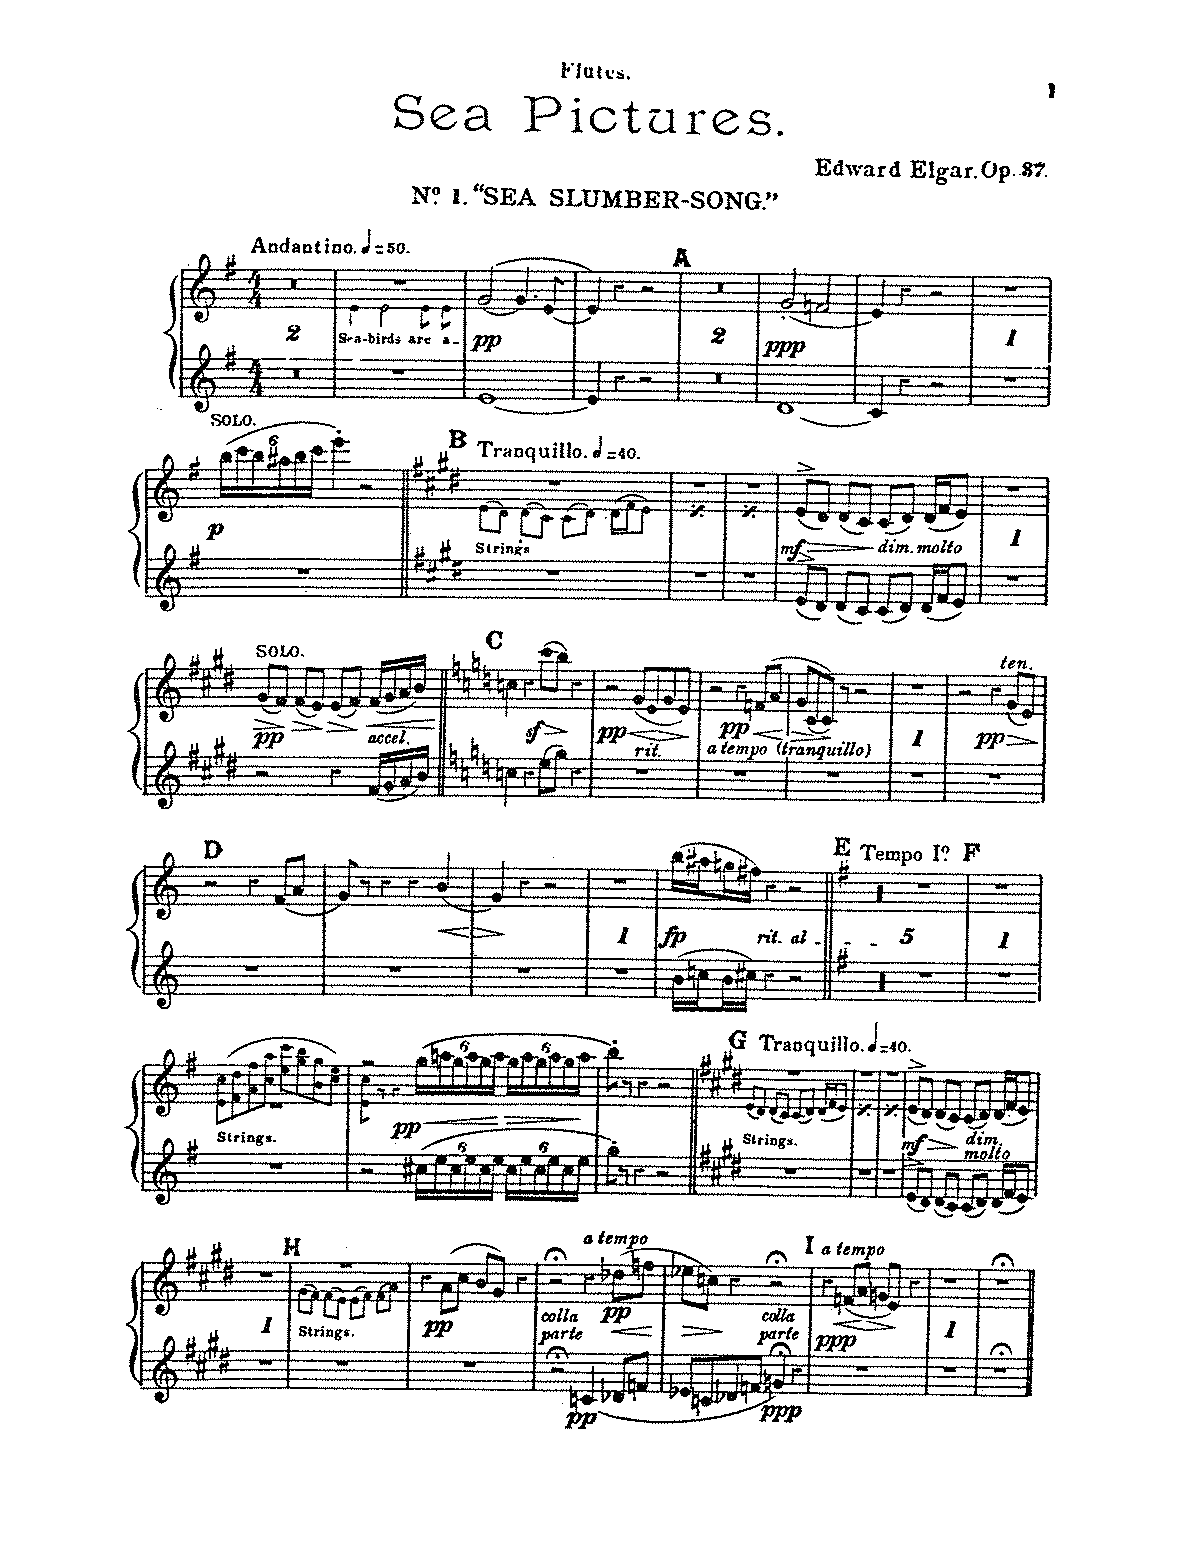 Sea Pictures, Op.37 (Elgar, Edward) - IMSLP/Petrucci Music Library: Free  Public Domain Sheet Music